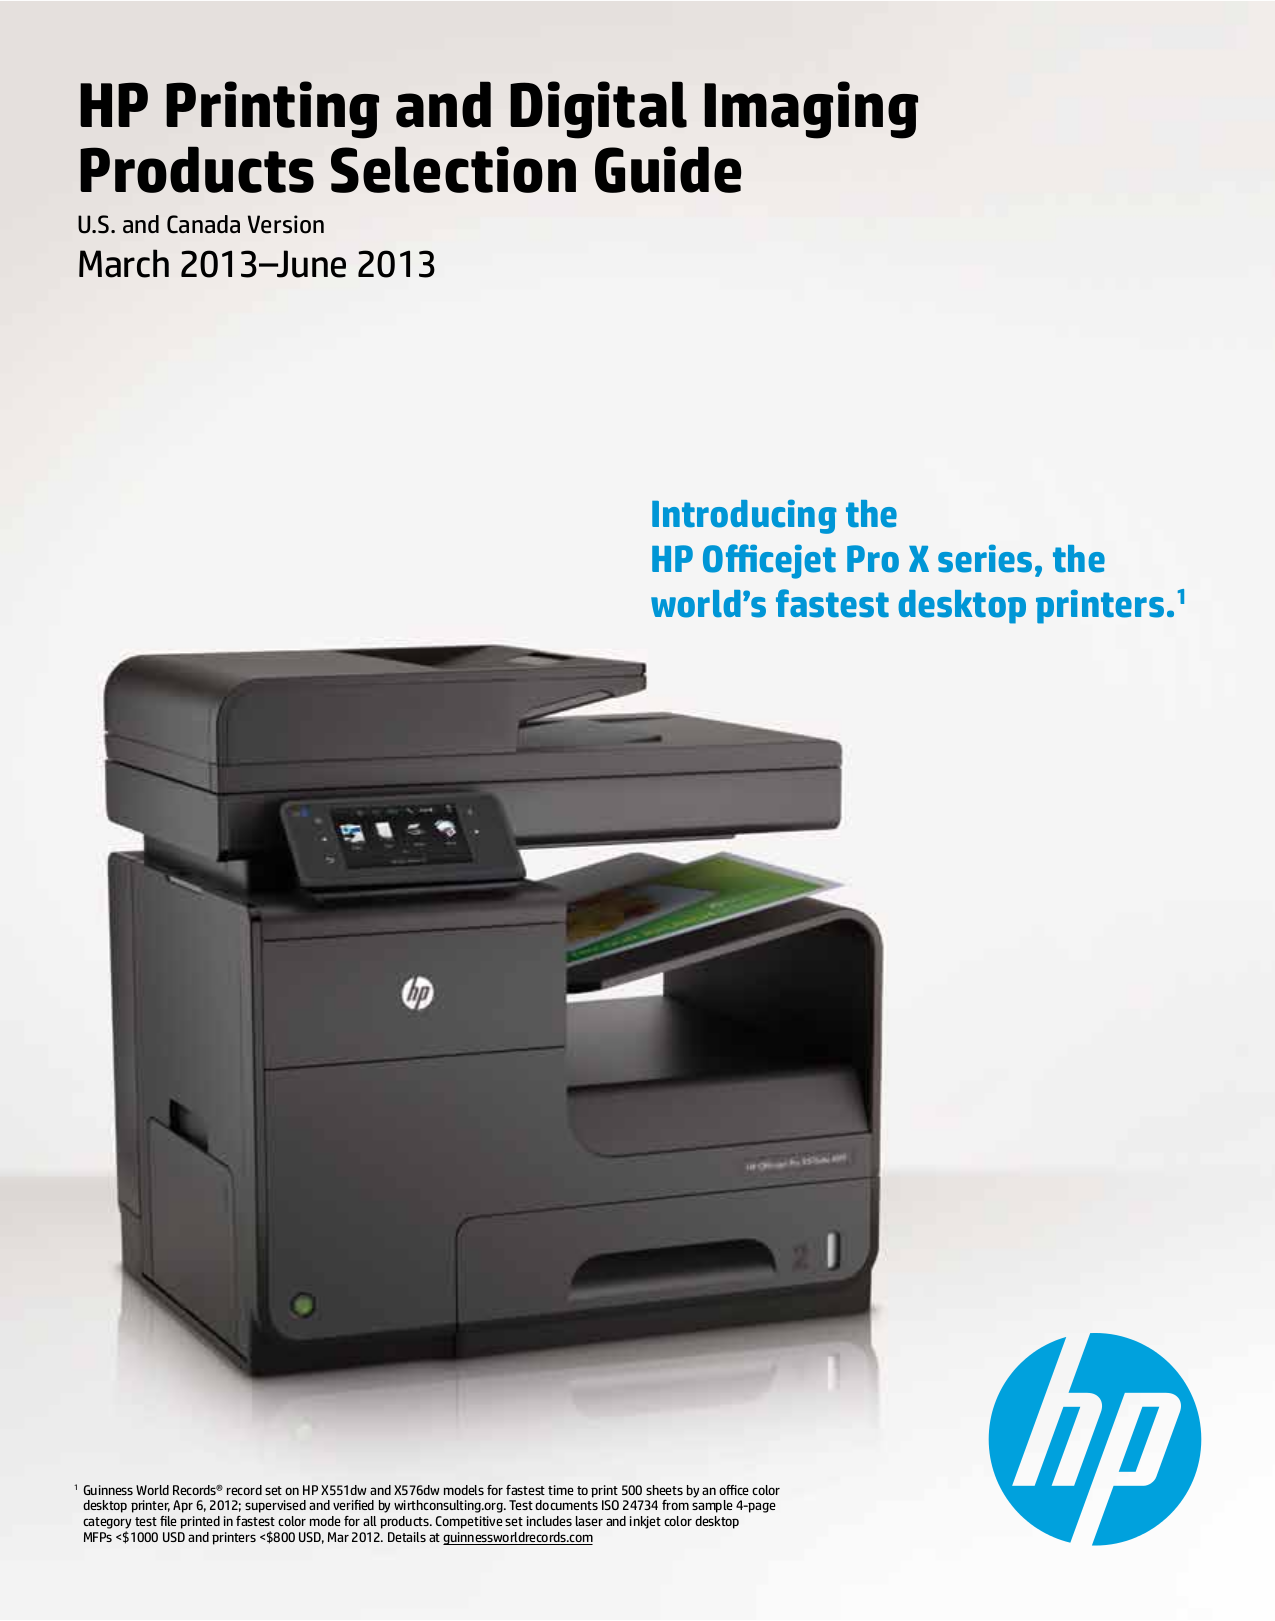 download free pdf for hp officejet 630 multifunction printer manual rh umlib com HP Photosmart 8200 Driver HP Photosmart 8200 Driver